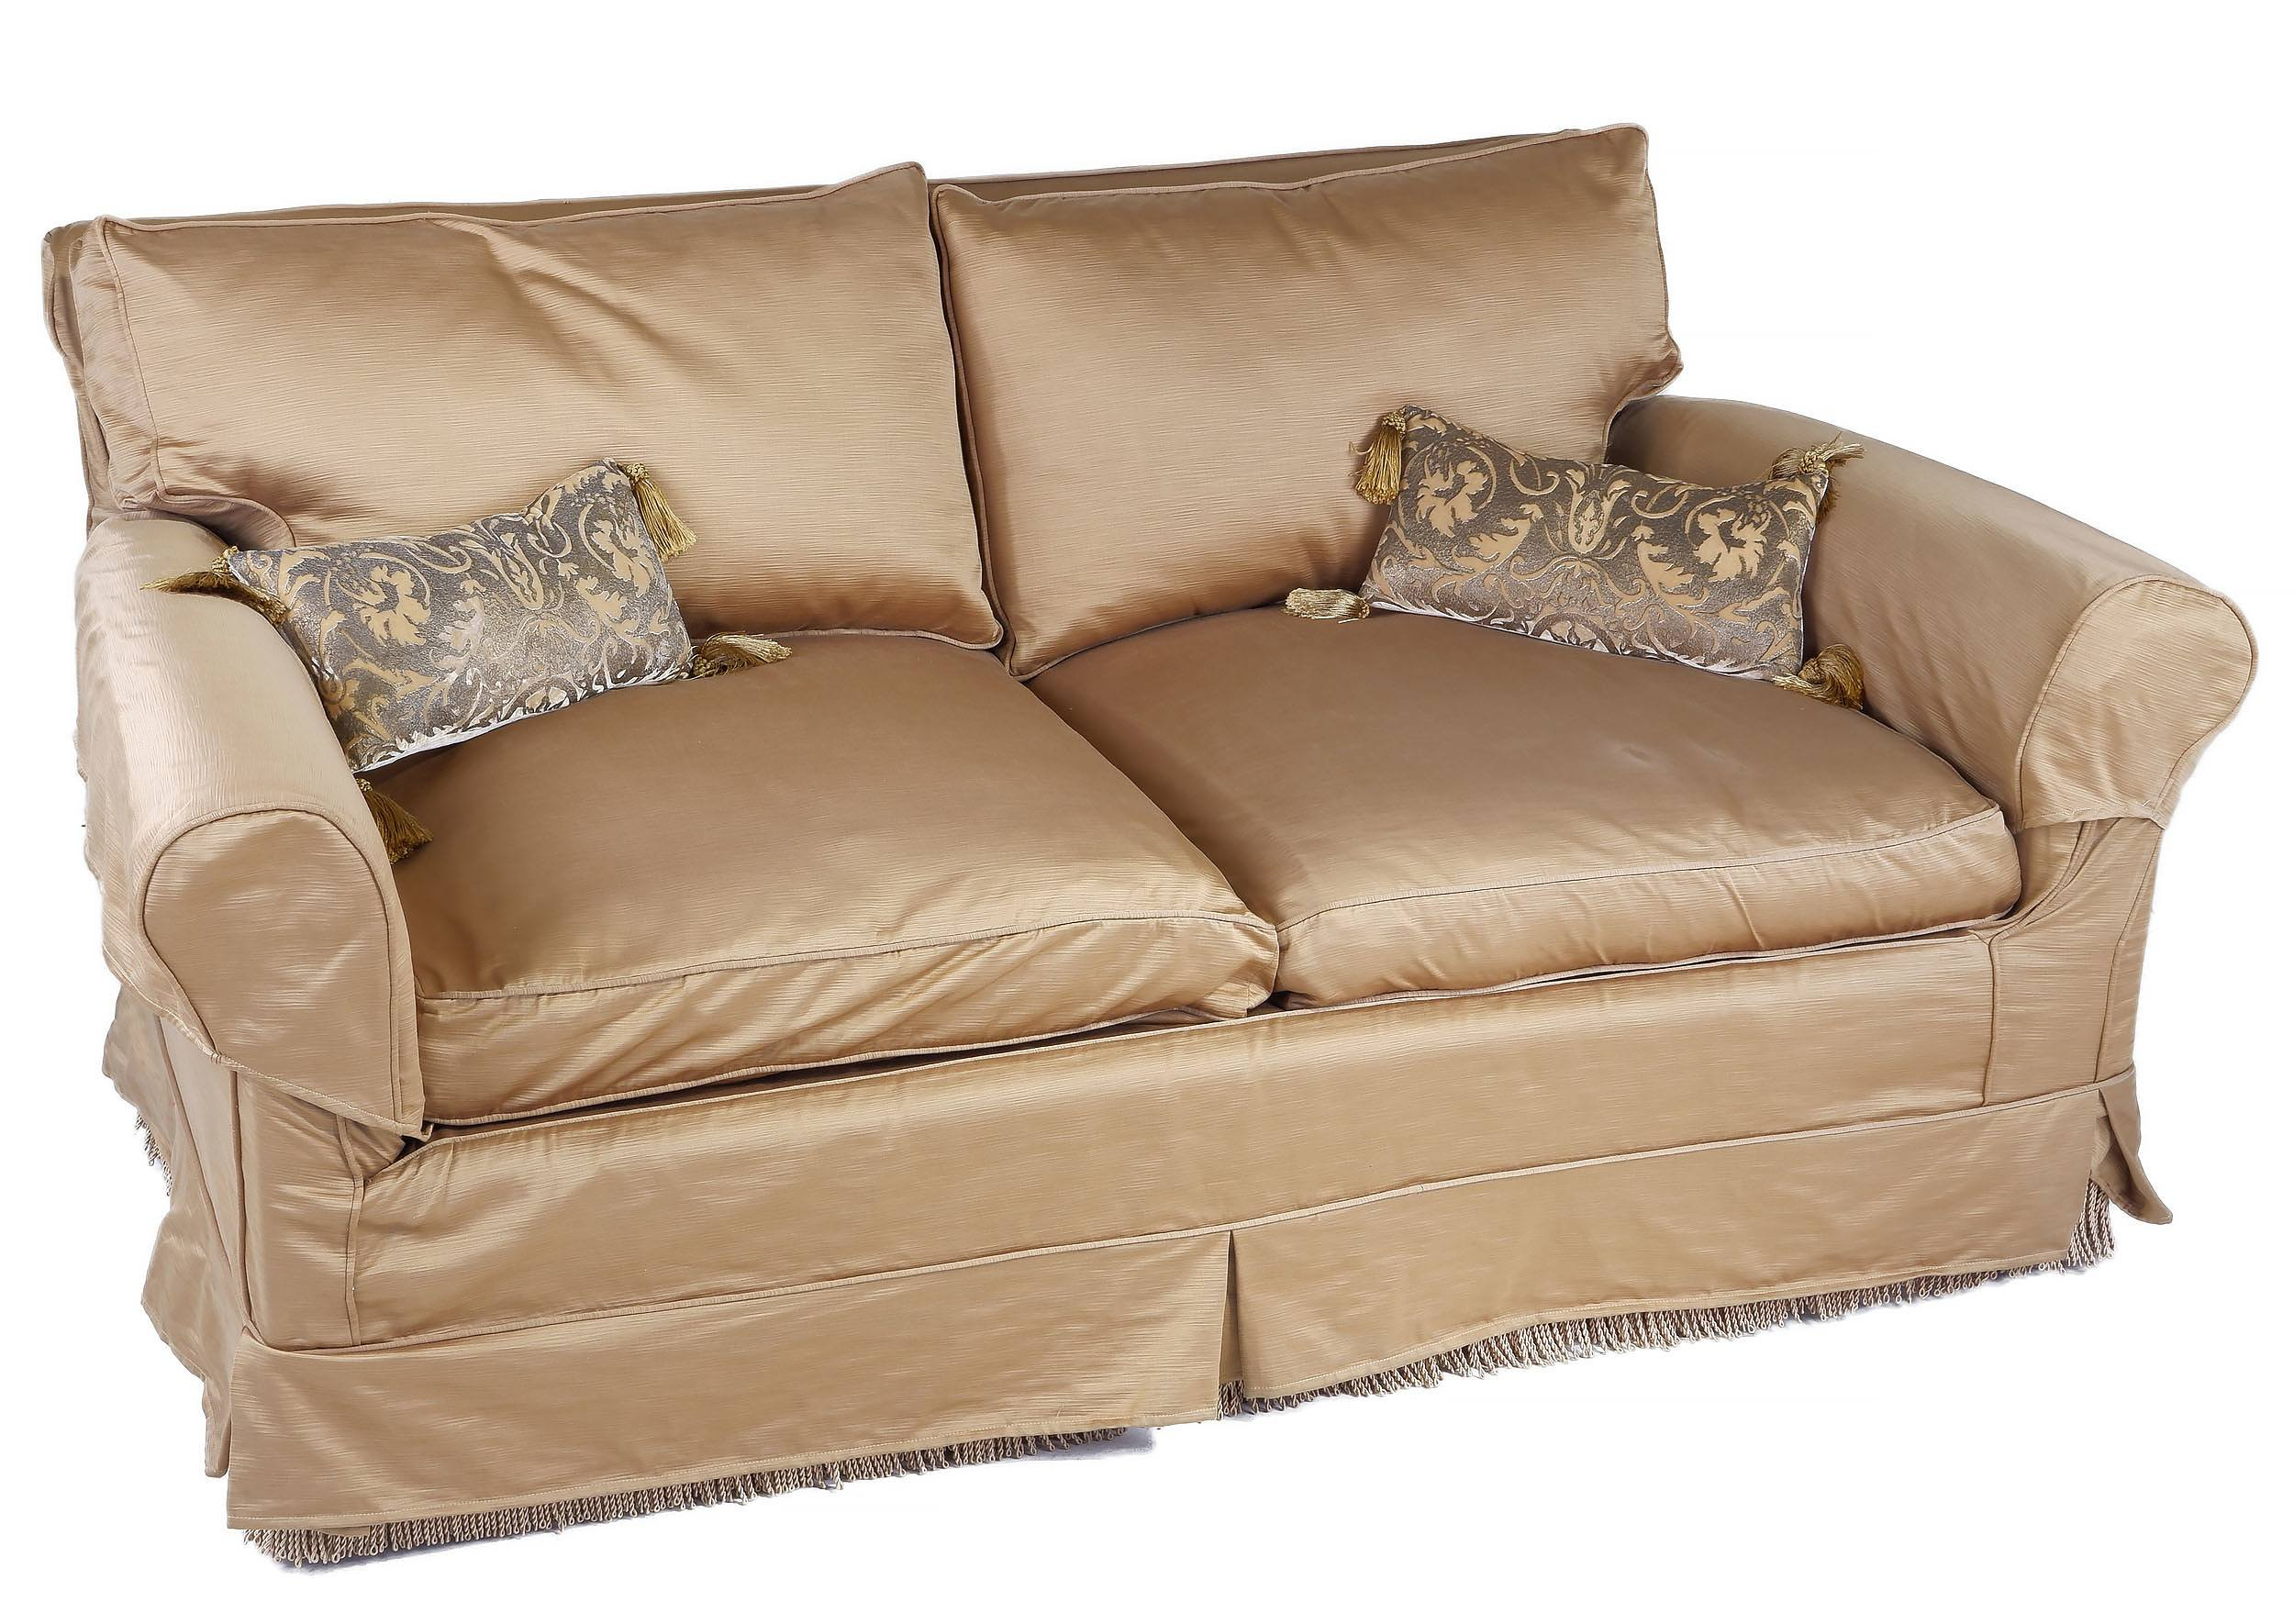 'Pair of Bronze Coloured Silk Upholstered Lounges and Cushions'